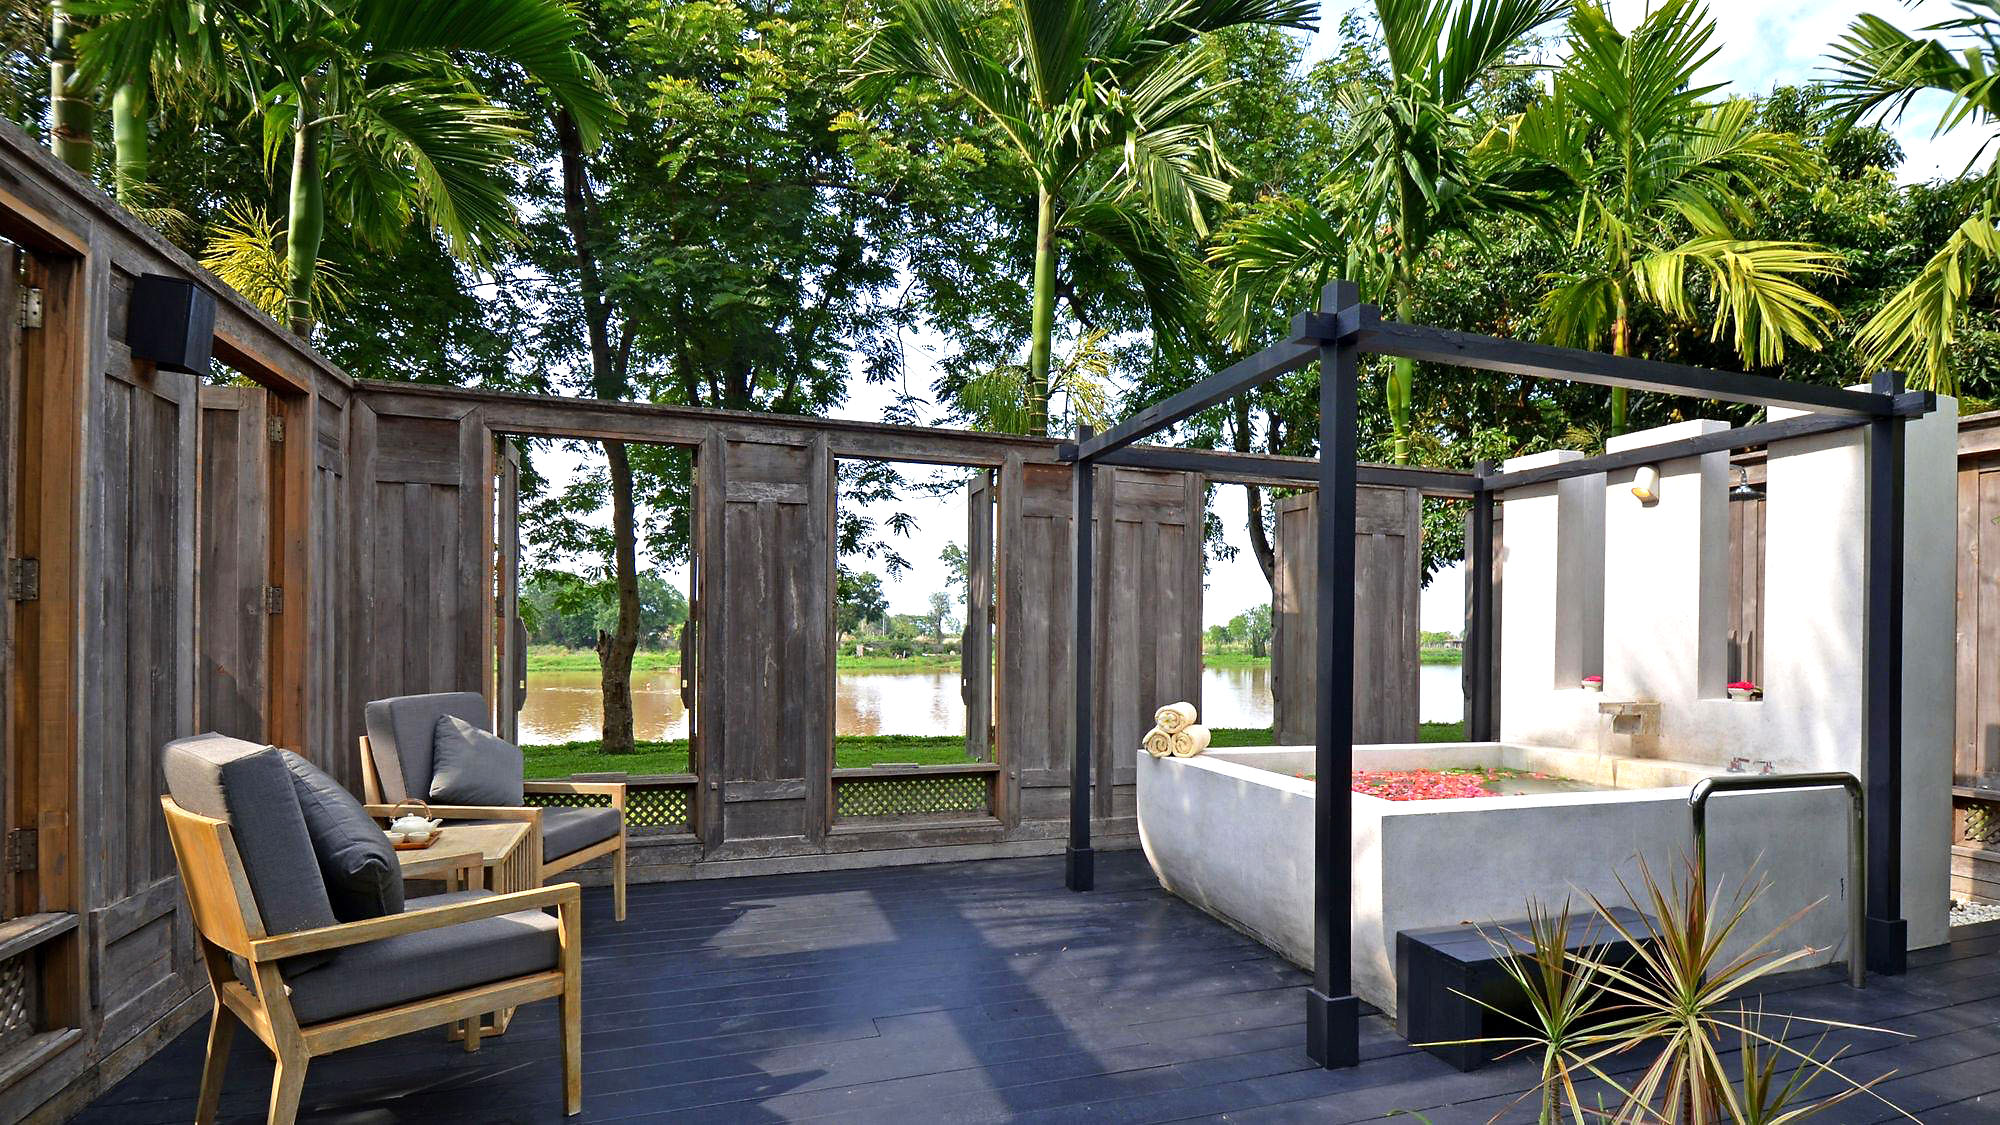 Terrace at Le Meridein hotel in Chiang Rai, Thailand